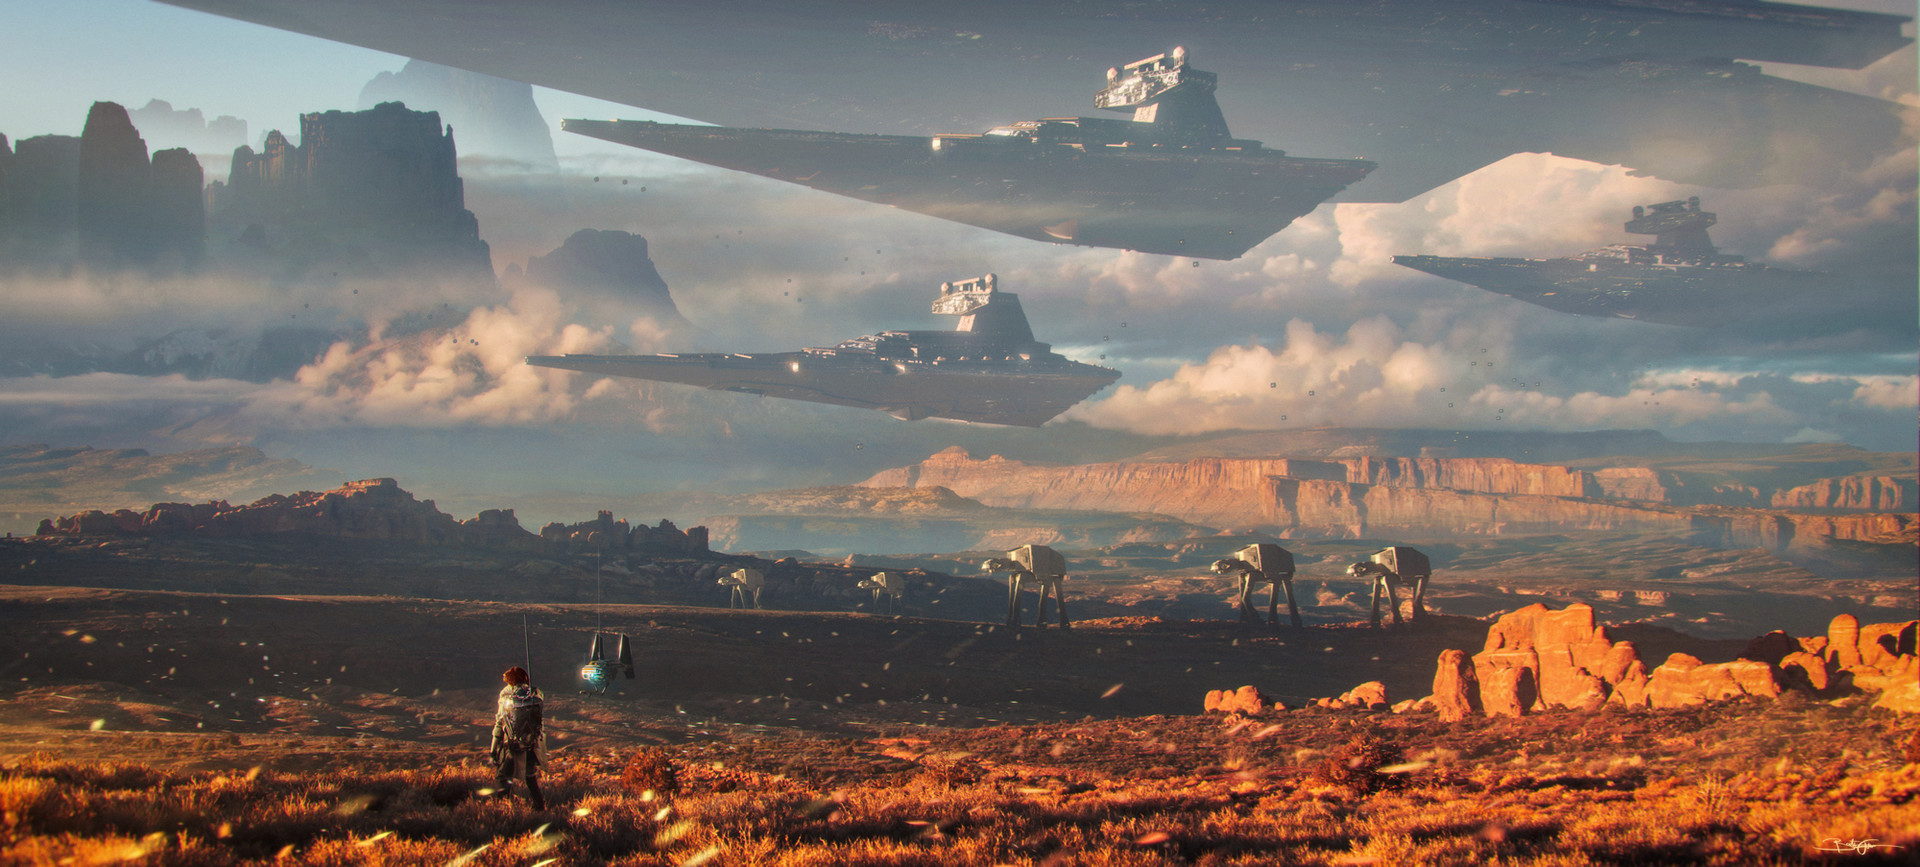 The Cool Sci-Fi Art of Bastien Grivet